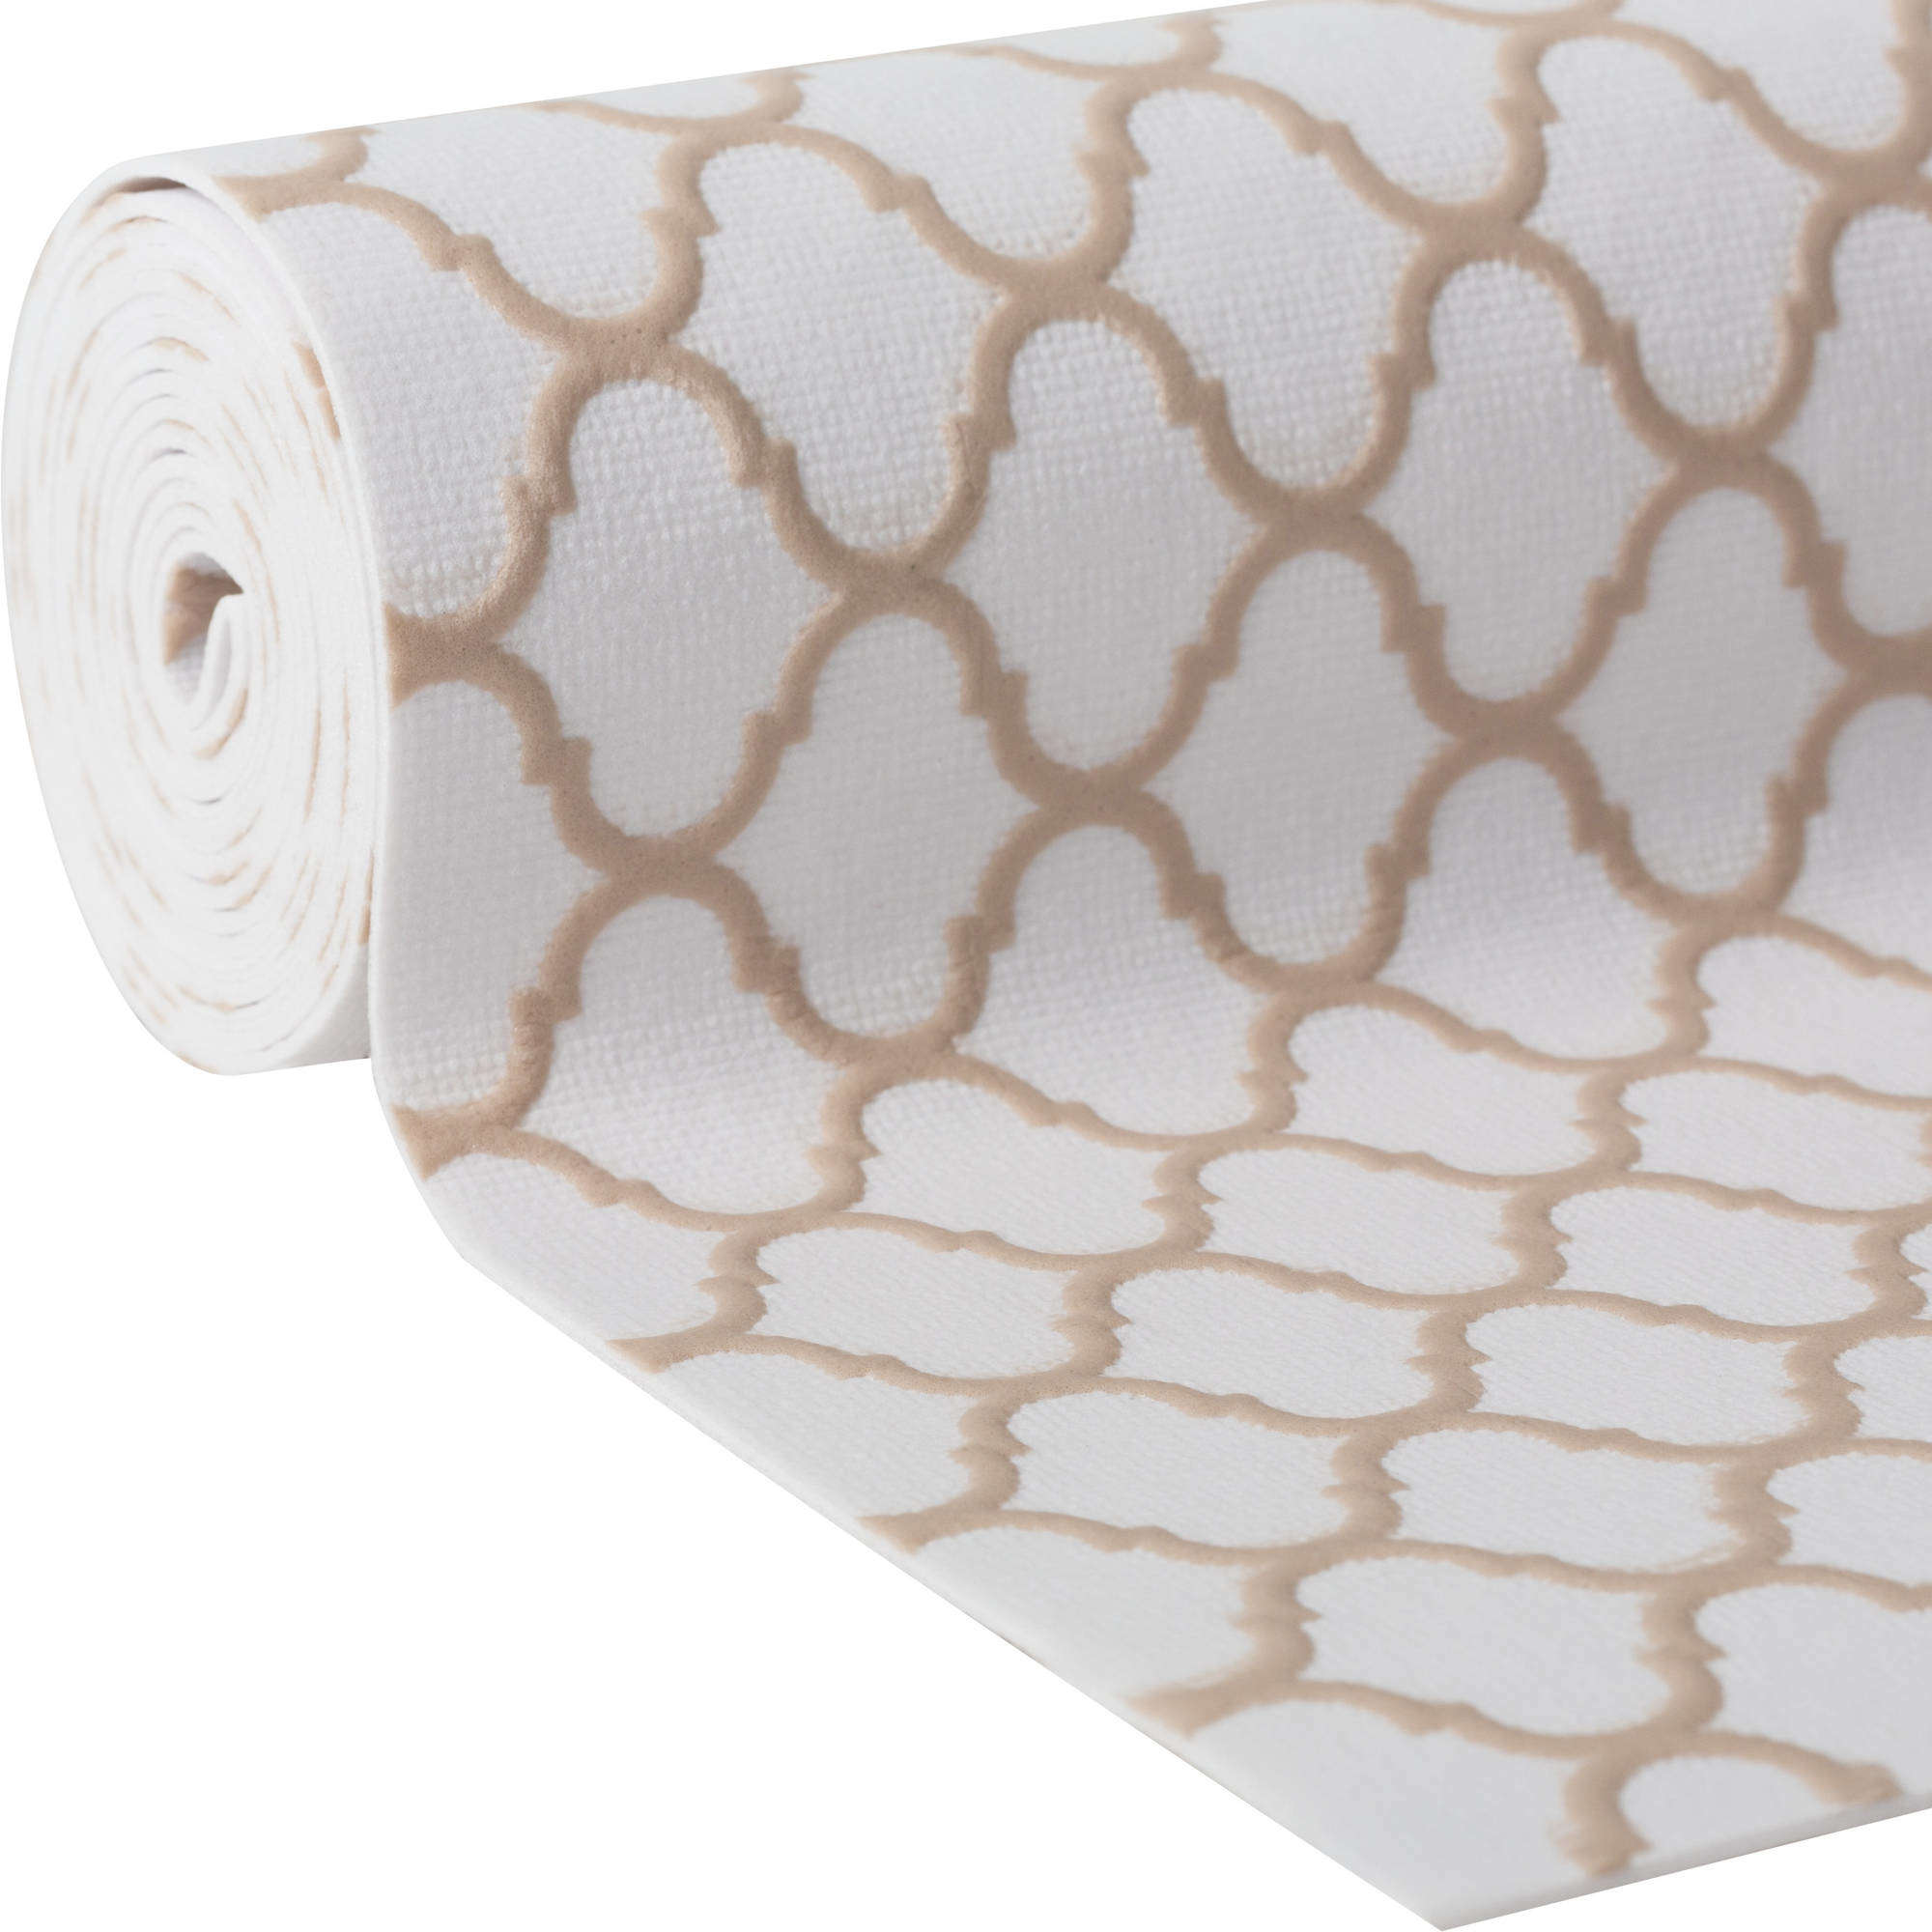 Duck Brand Embossed Solid Grip Easy Liner Brand Shelf Liner - Taupe Quatrefoil, 12 in. x 7 ft.